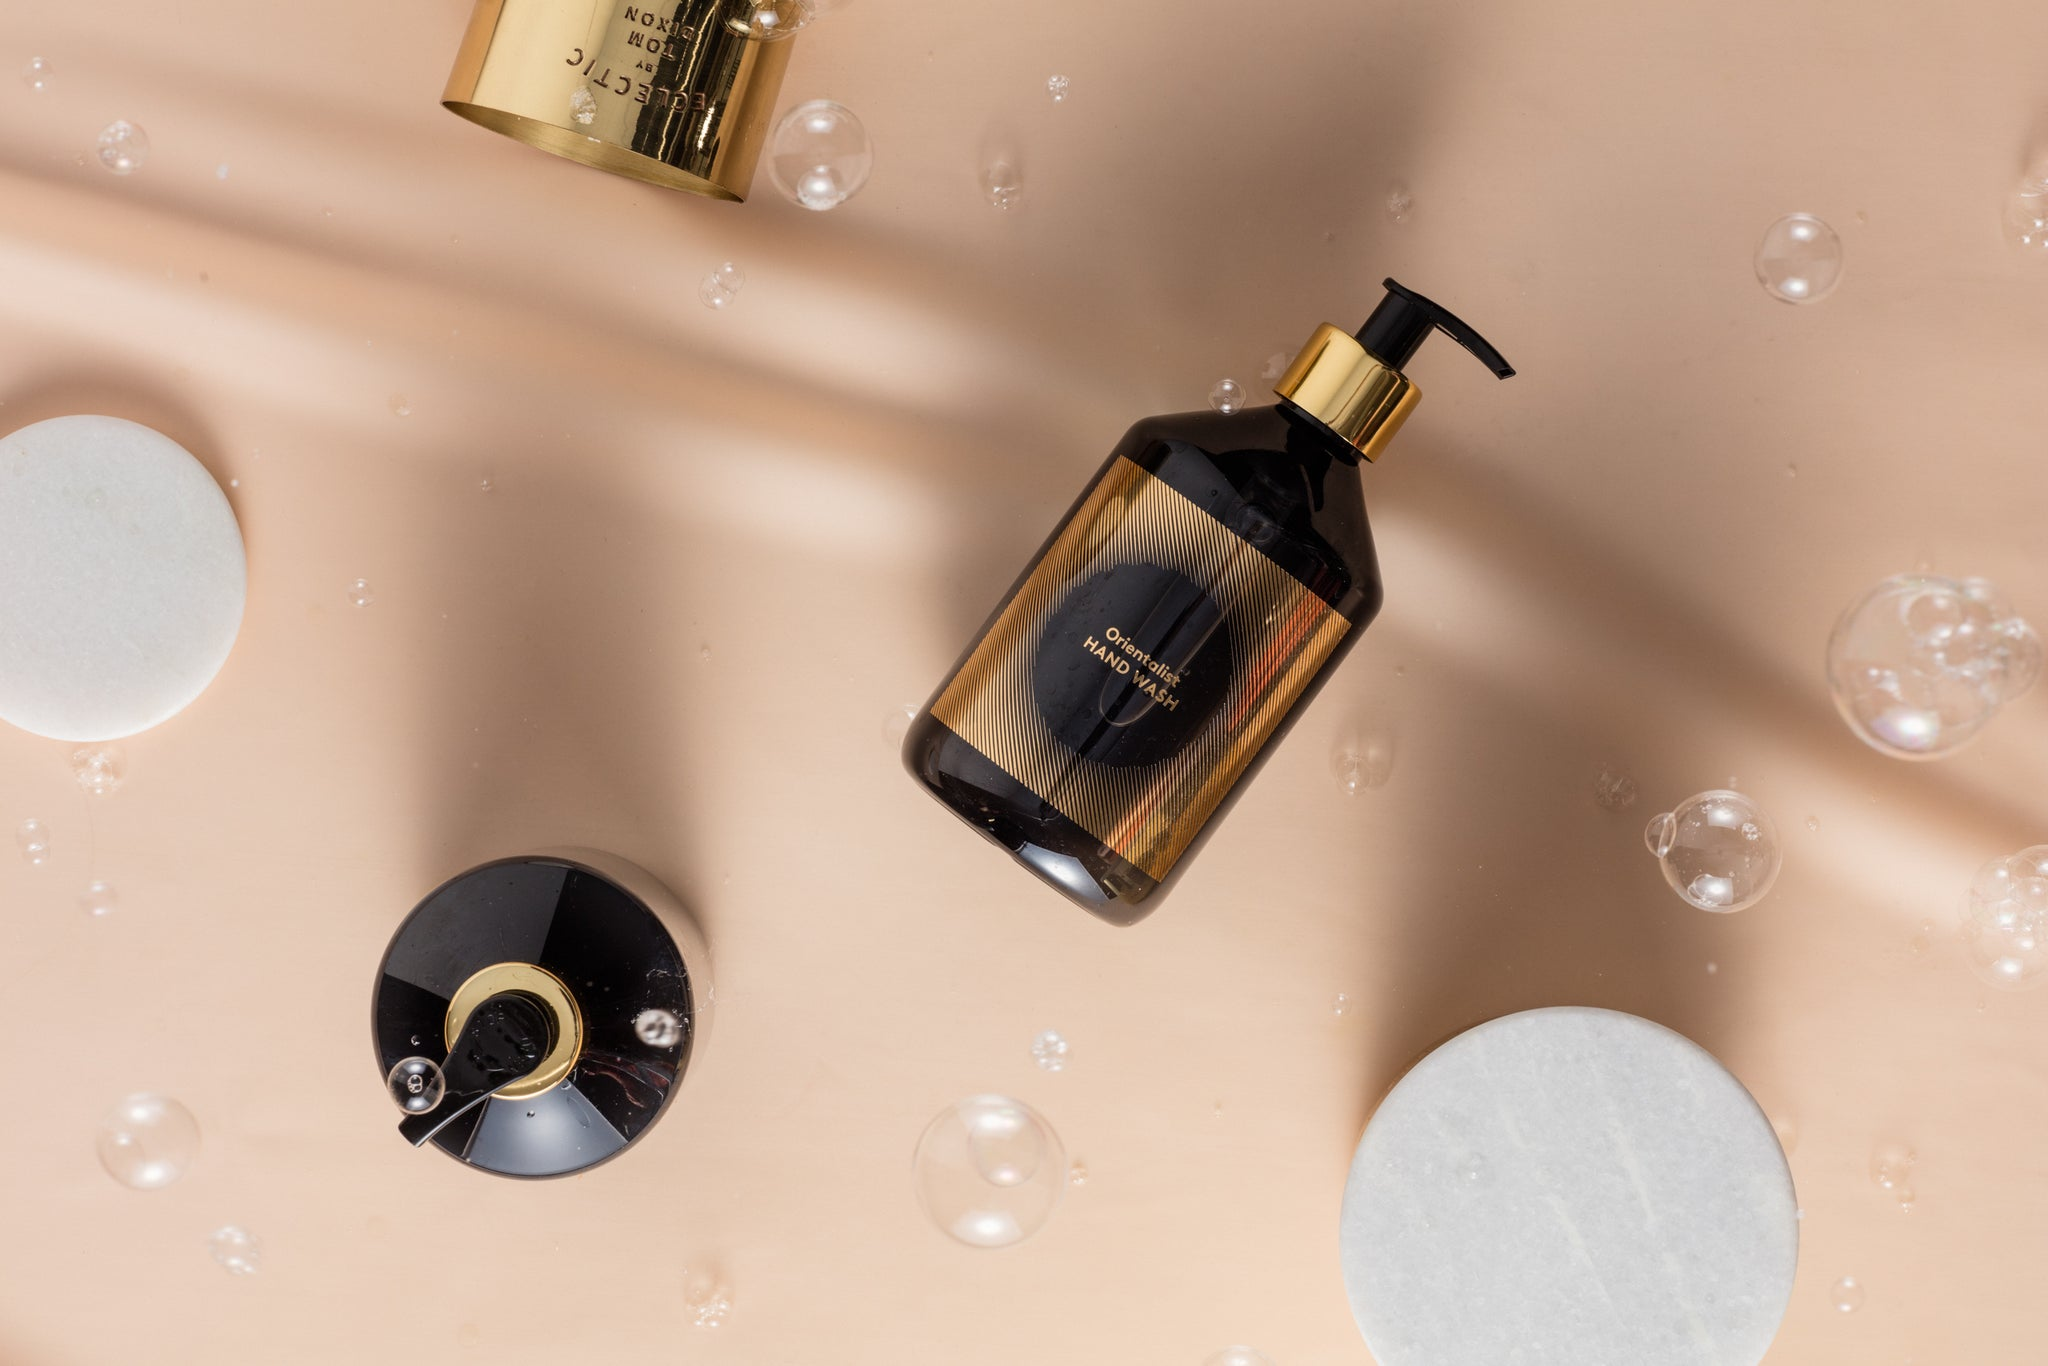 orientalism-hand-wash-irori-blog-the-ultimate-skincare-and-body-care-products-that-look-good-and-work-too-tom-dixon